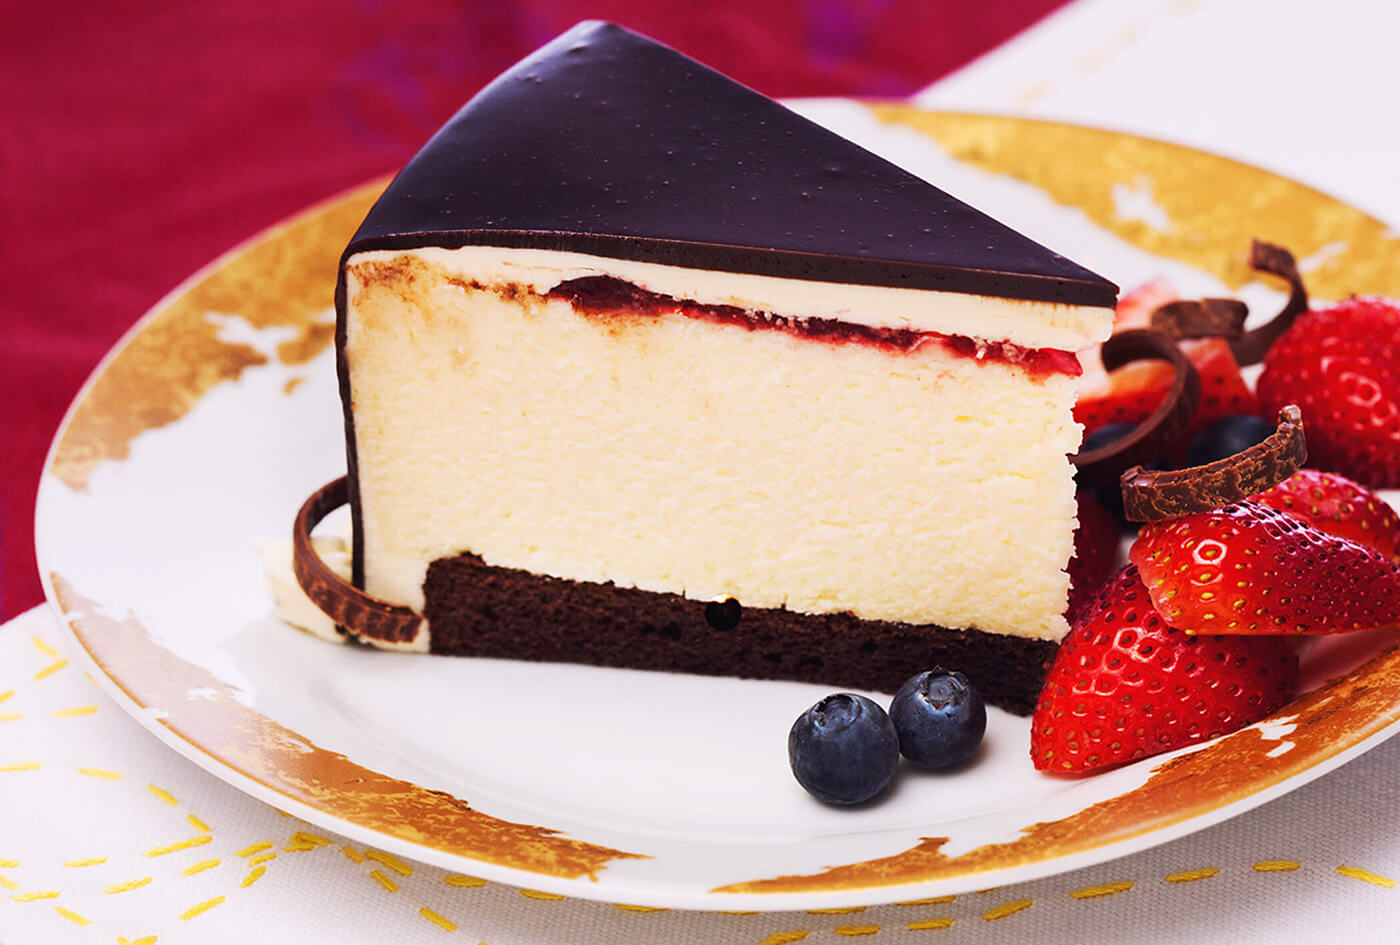 Cheesecake filling cost reduced with Grande Bravo functional whey protein